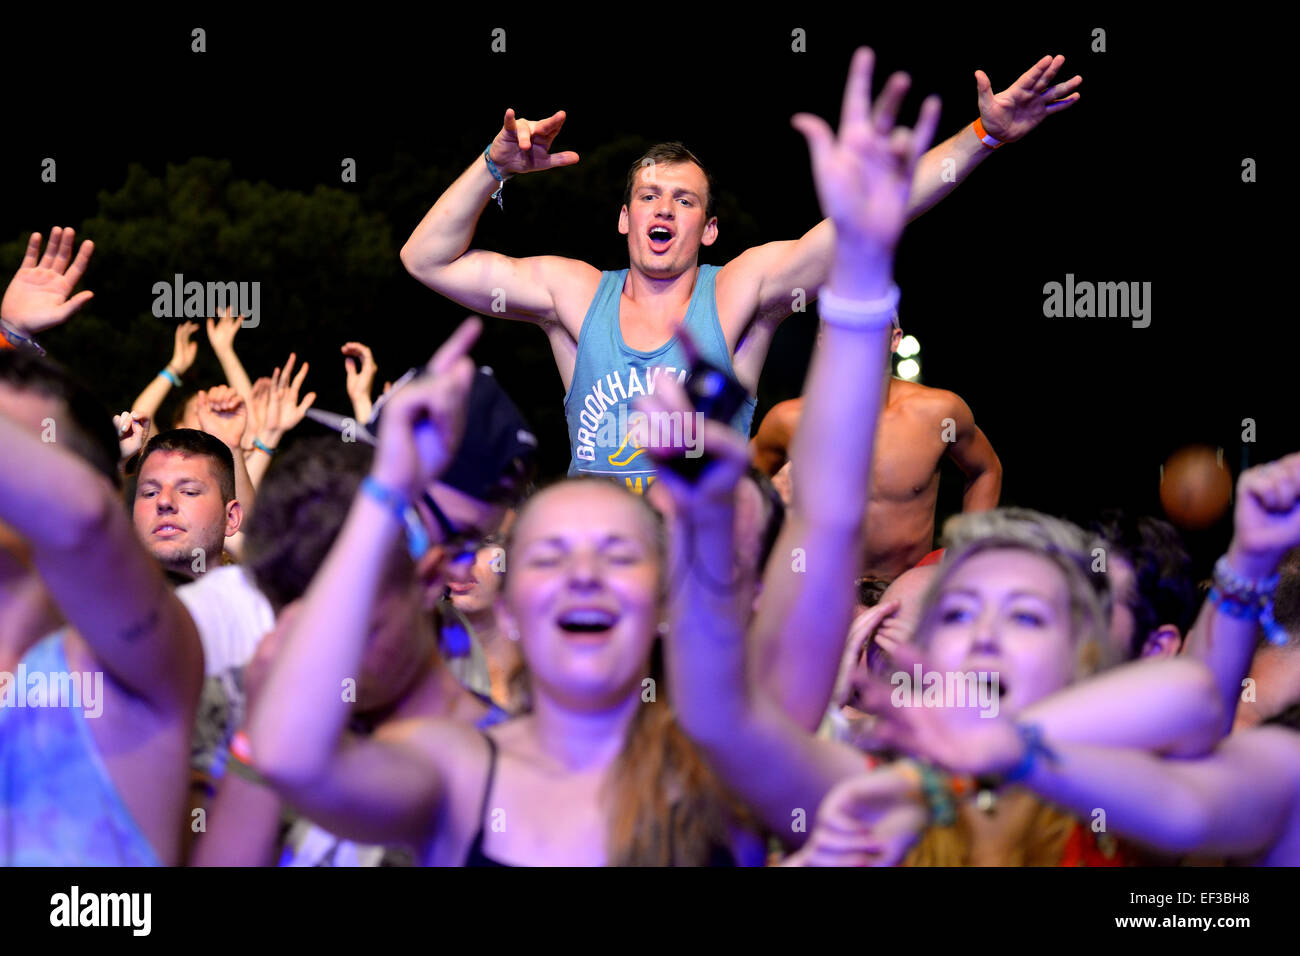 BENICASSIM, SPAIN - JULY 20: Crowd in a concert at FIB Festival on July 20, 2014 in Benicassim, Spain. - Stock Image